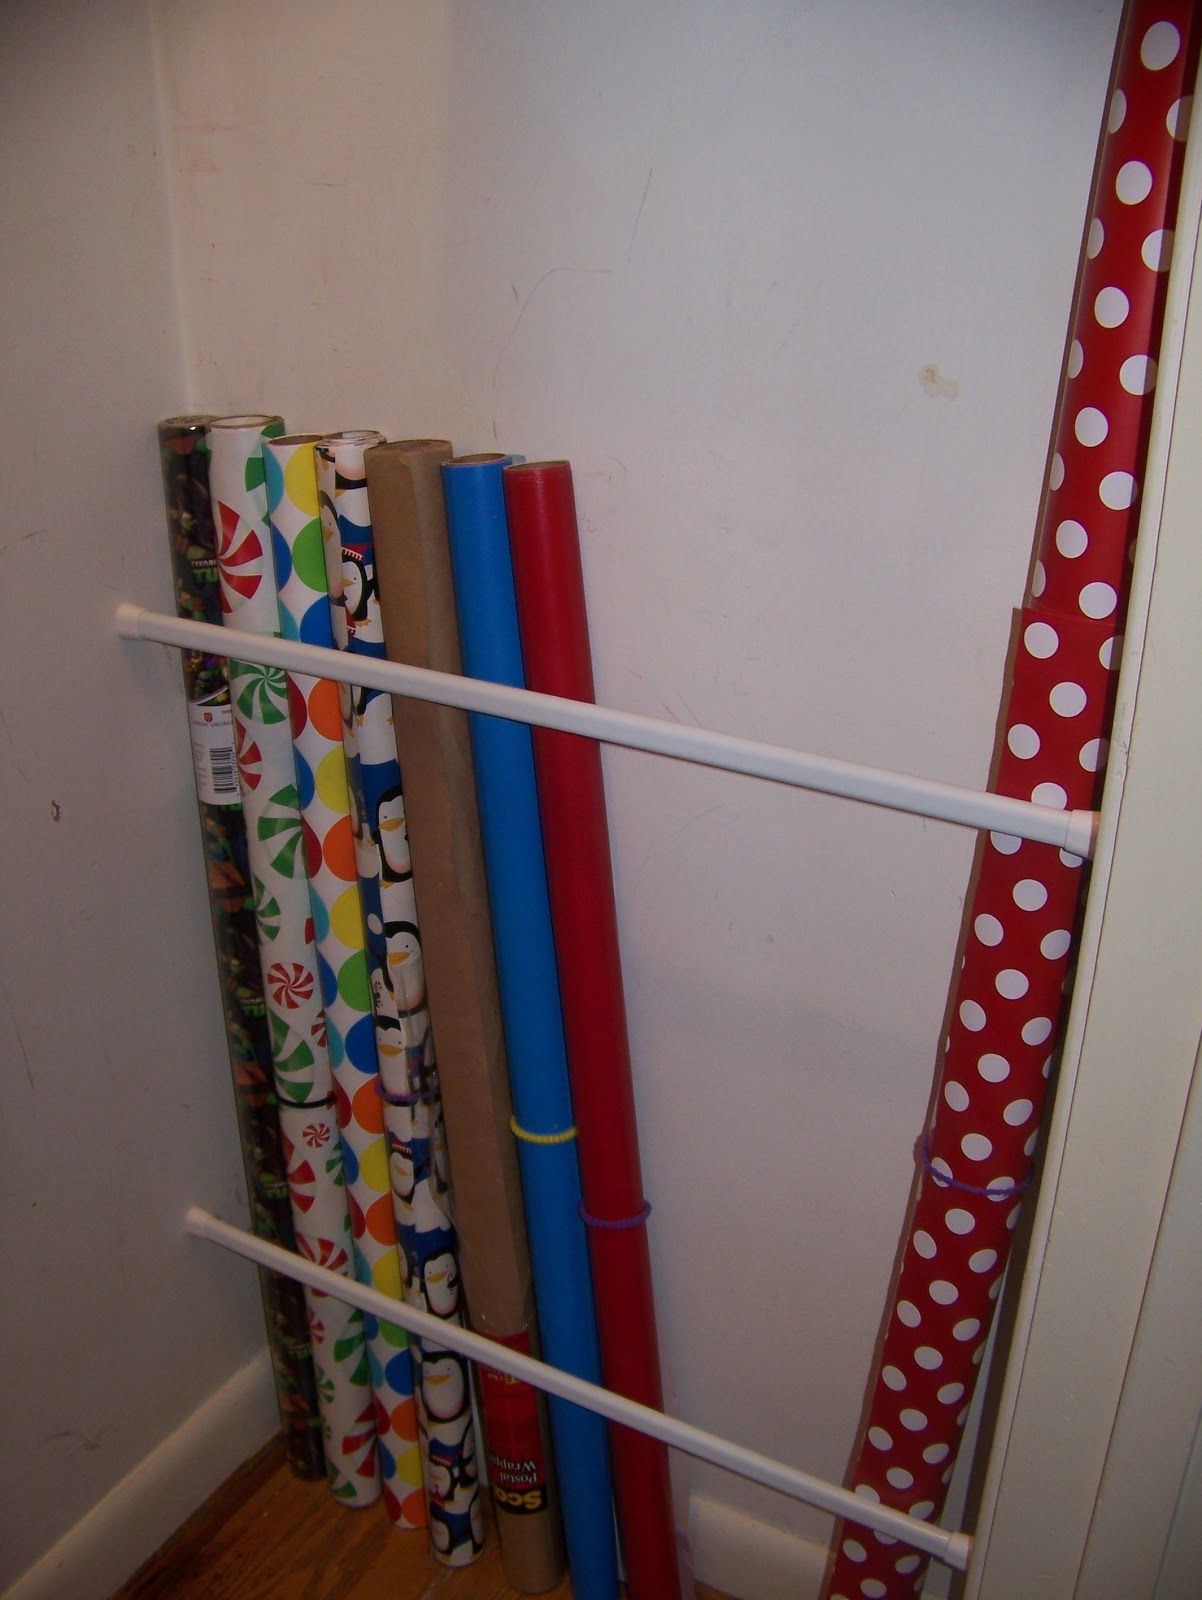 Gift wrap storage ideas - 17 Best Images About Wrapping Paper Storage On Pinterest Closet Doors Gift Wrap Organizer And Gift Wrap